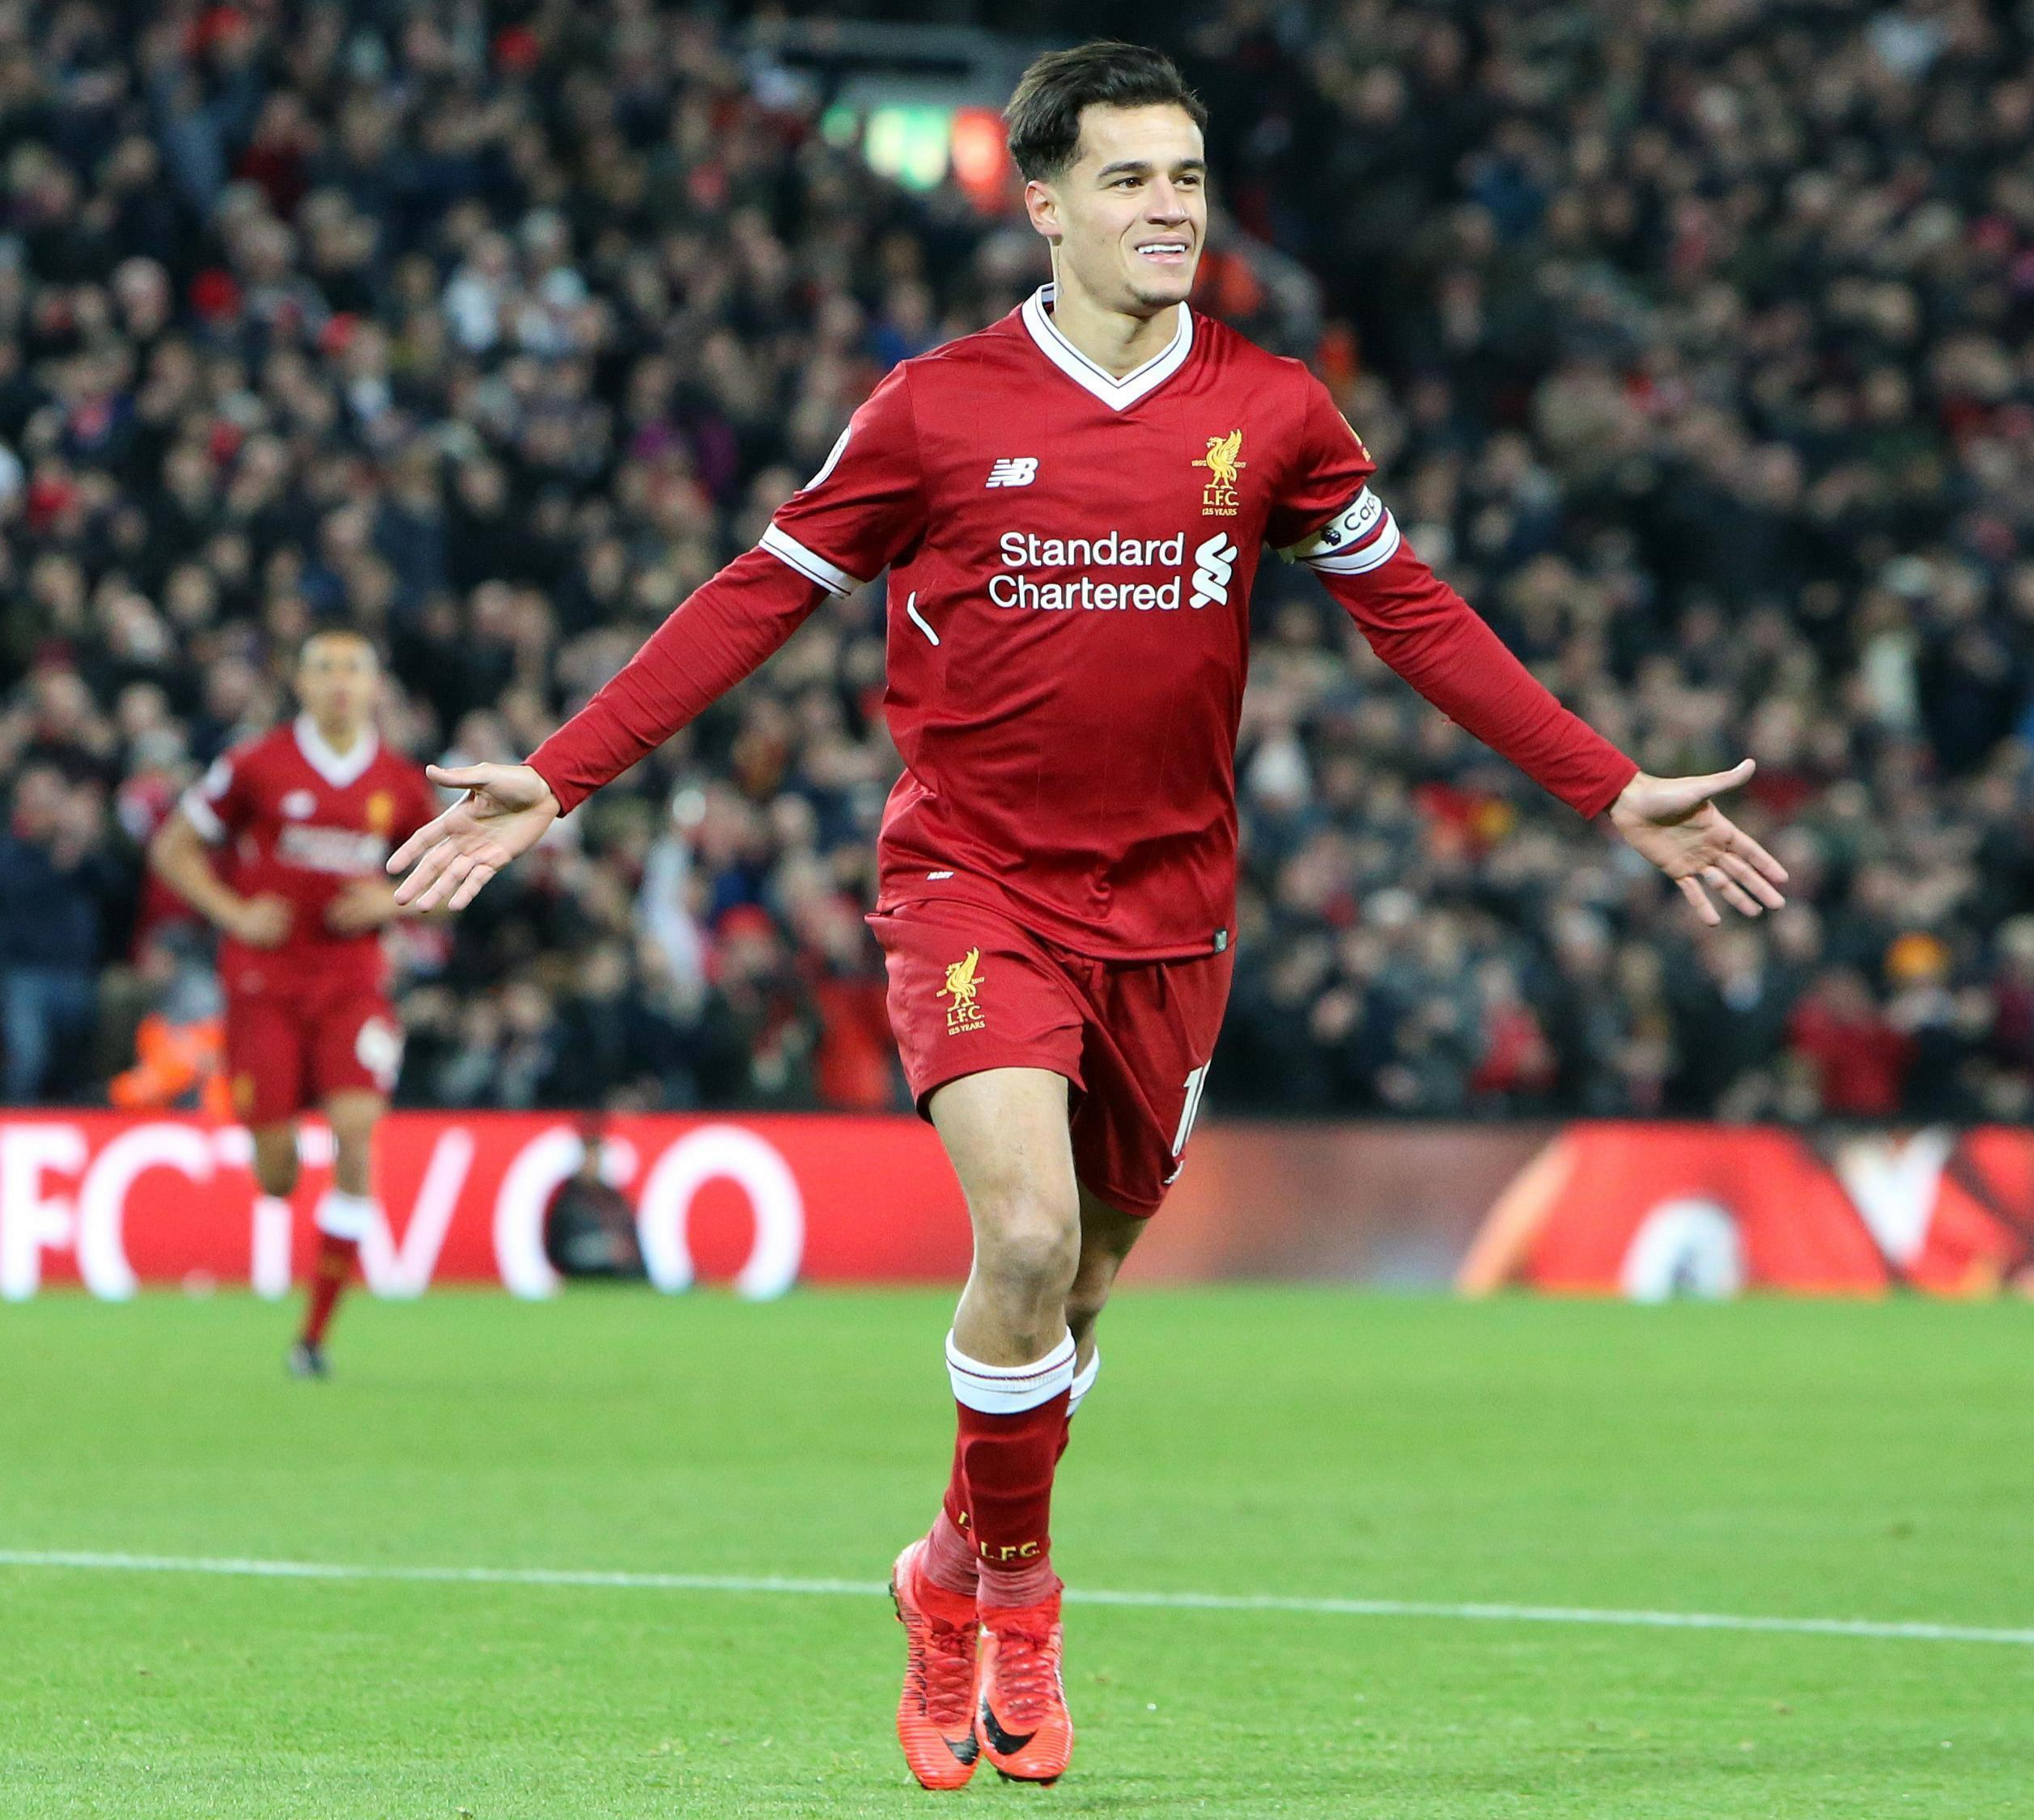 Barcelona will need to sell players to free up £125m needed for Philippe Coutinho